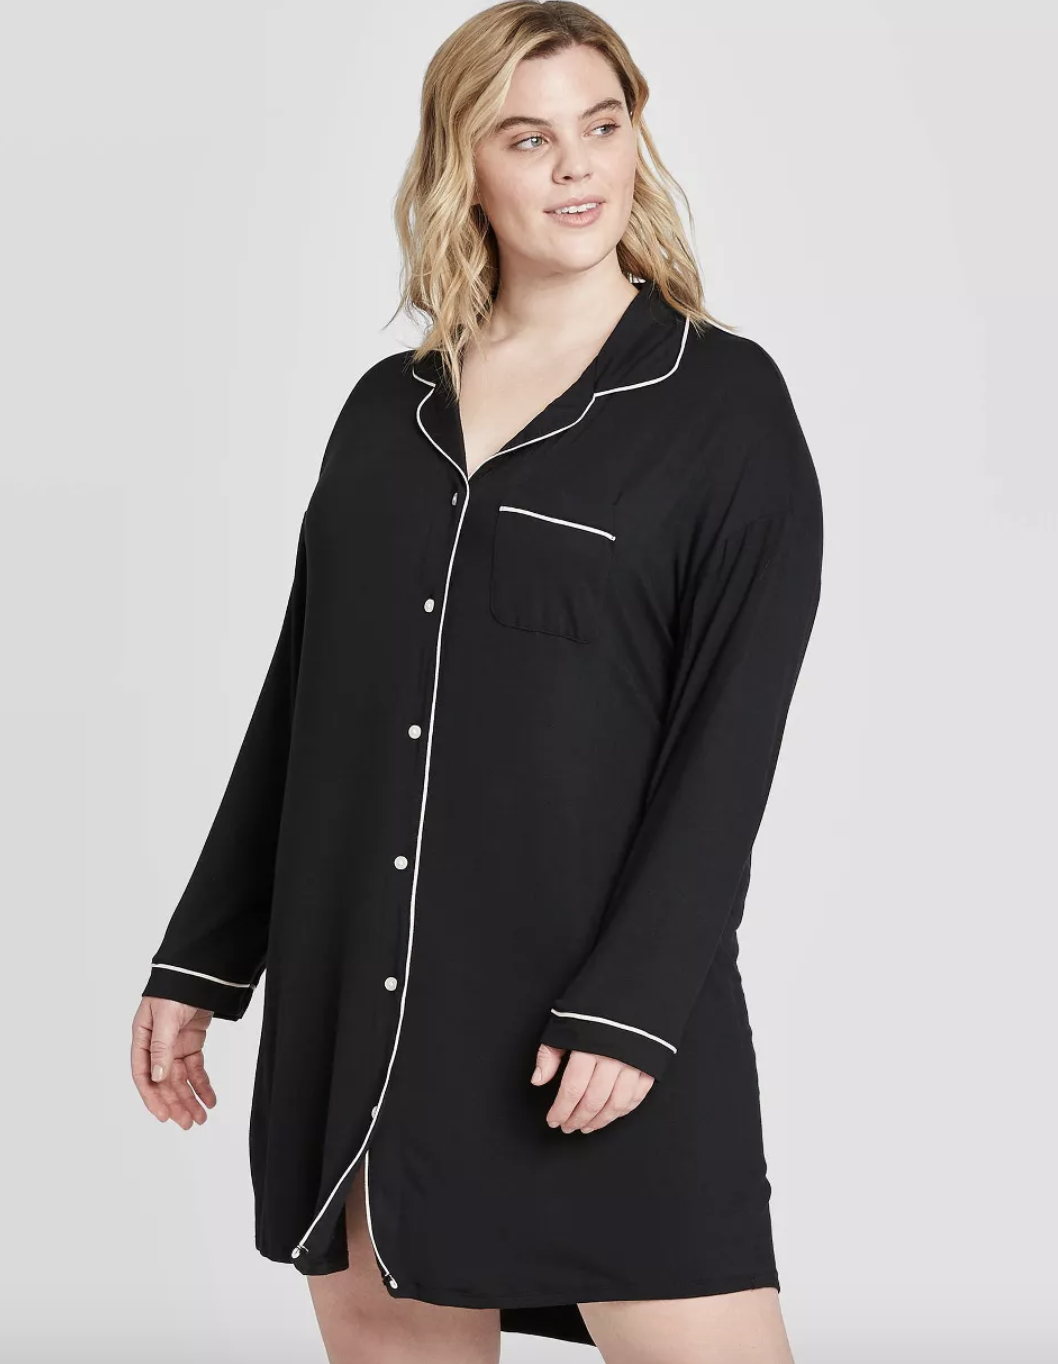 model wearing black sleeved button-down